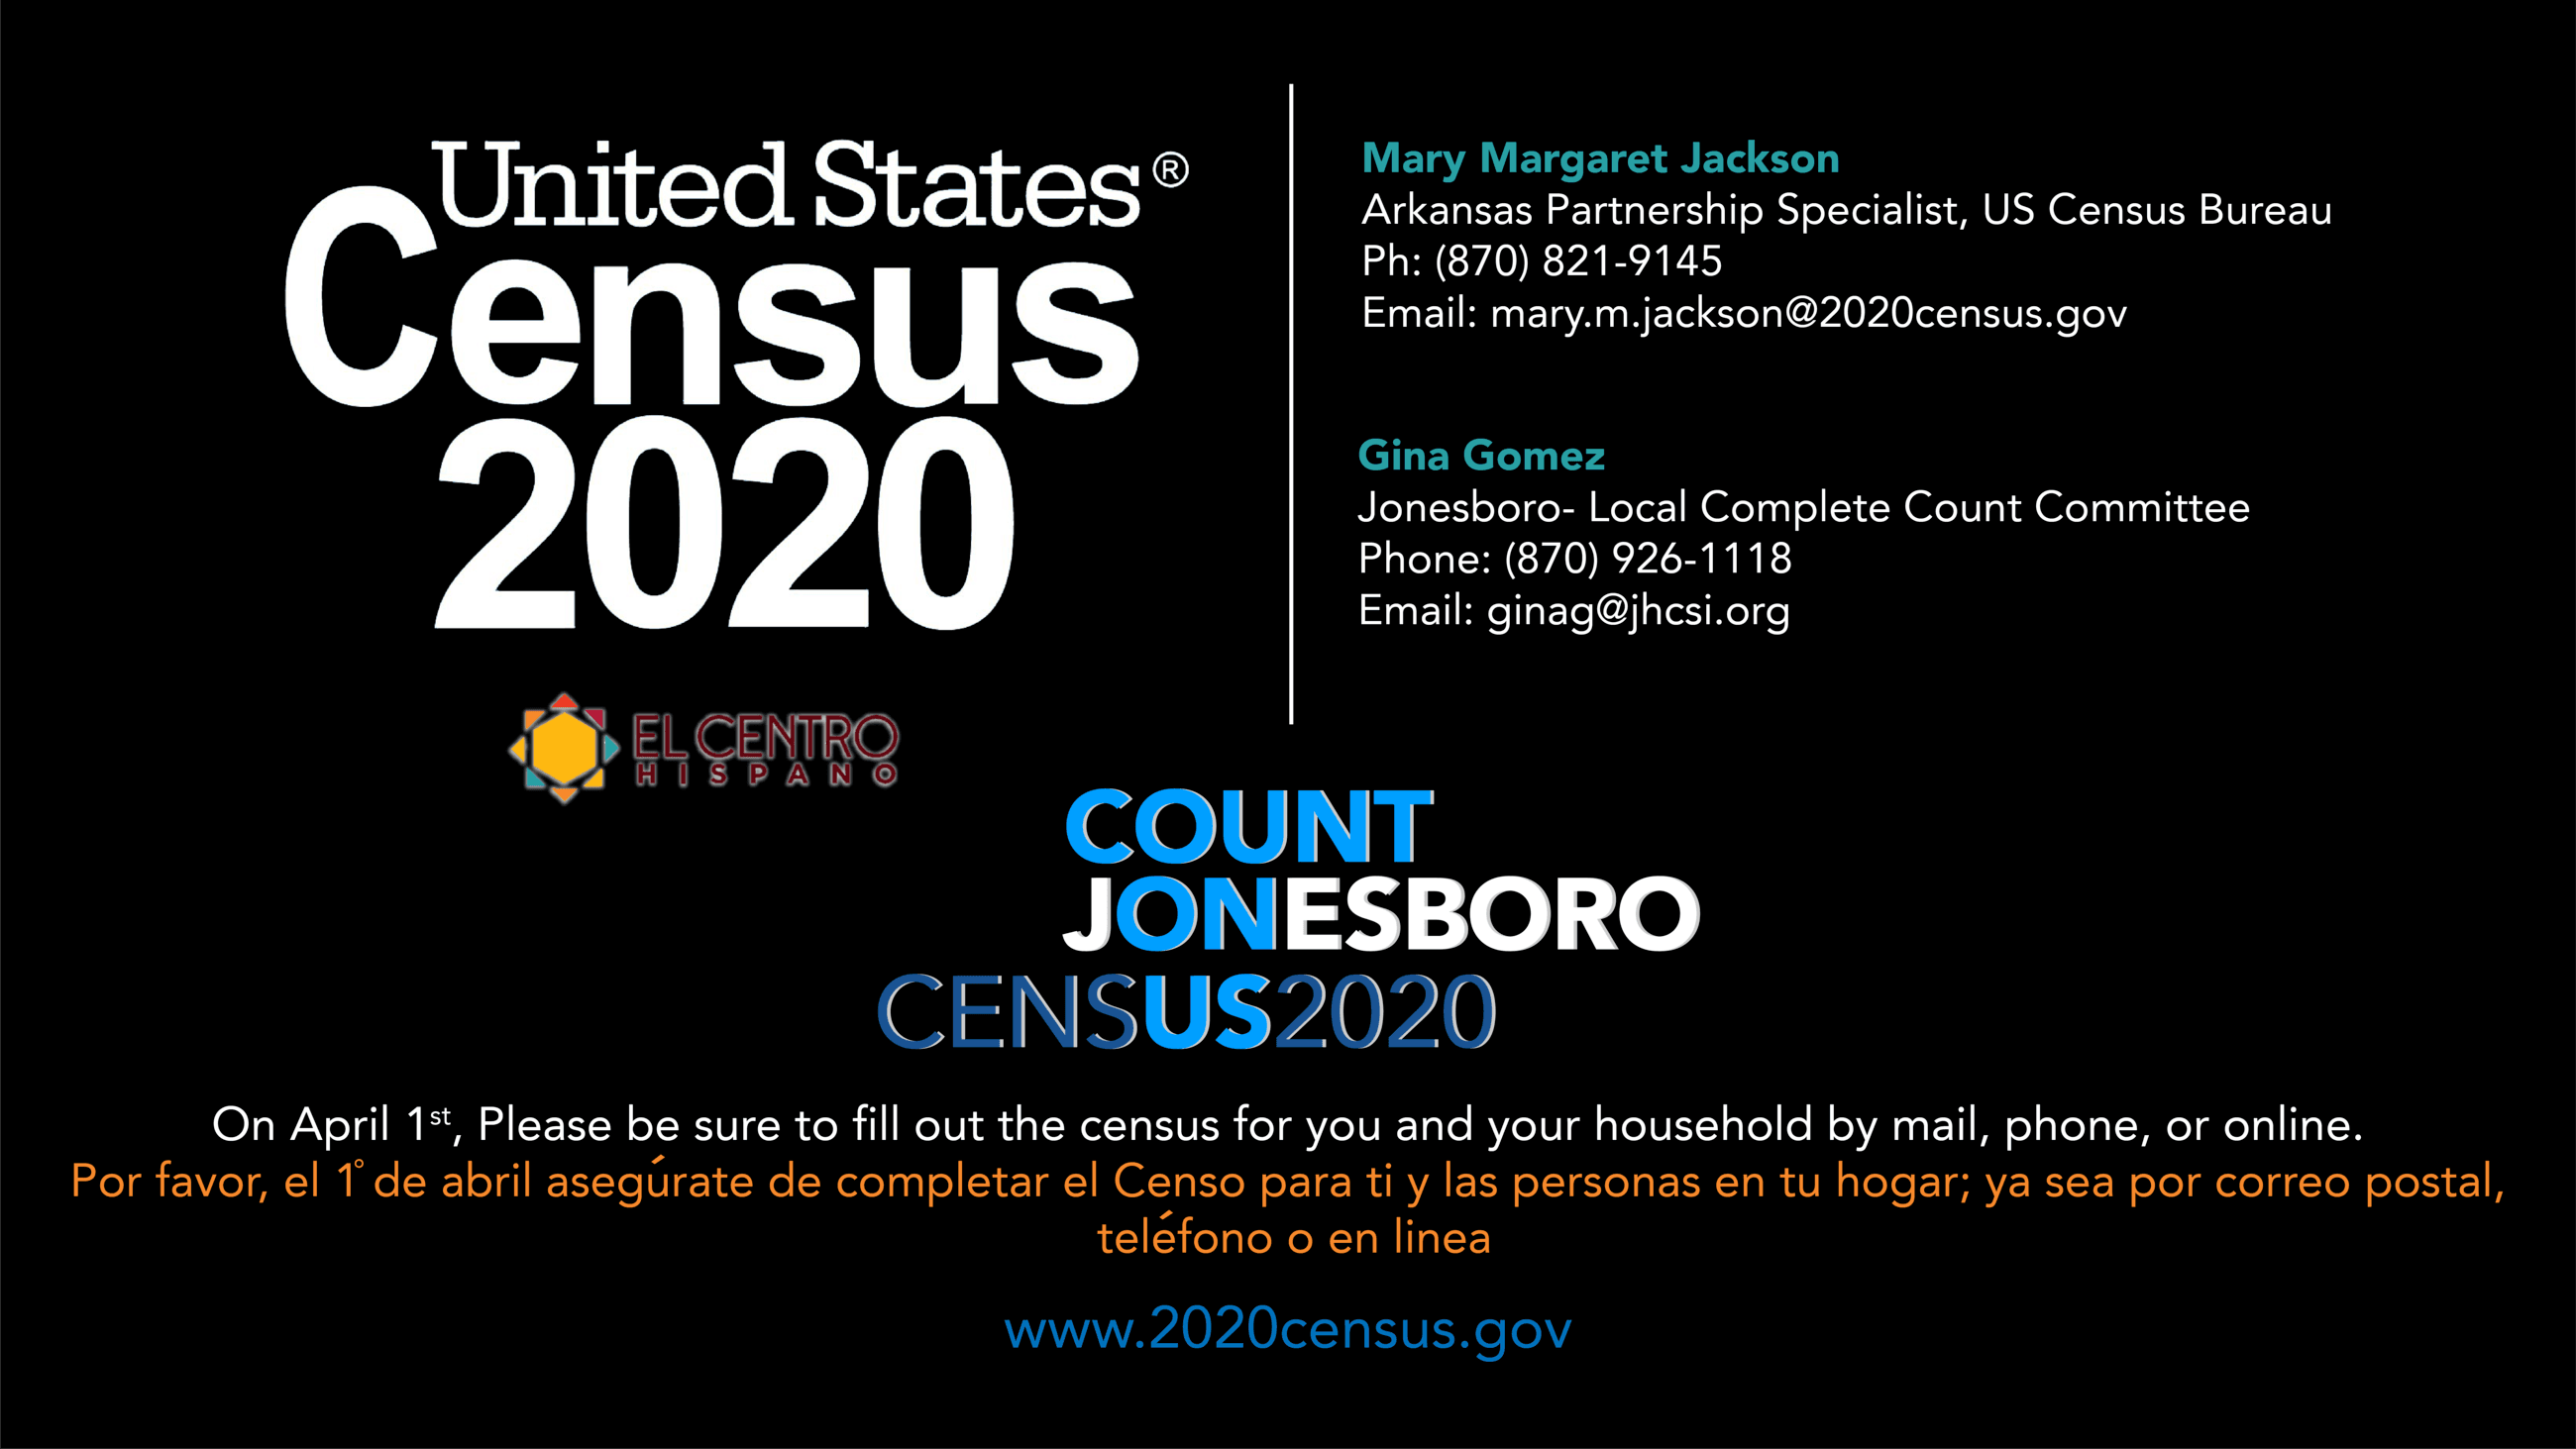 2020 Census graphic with logos and contact names